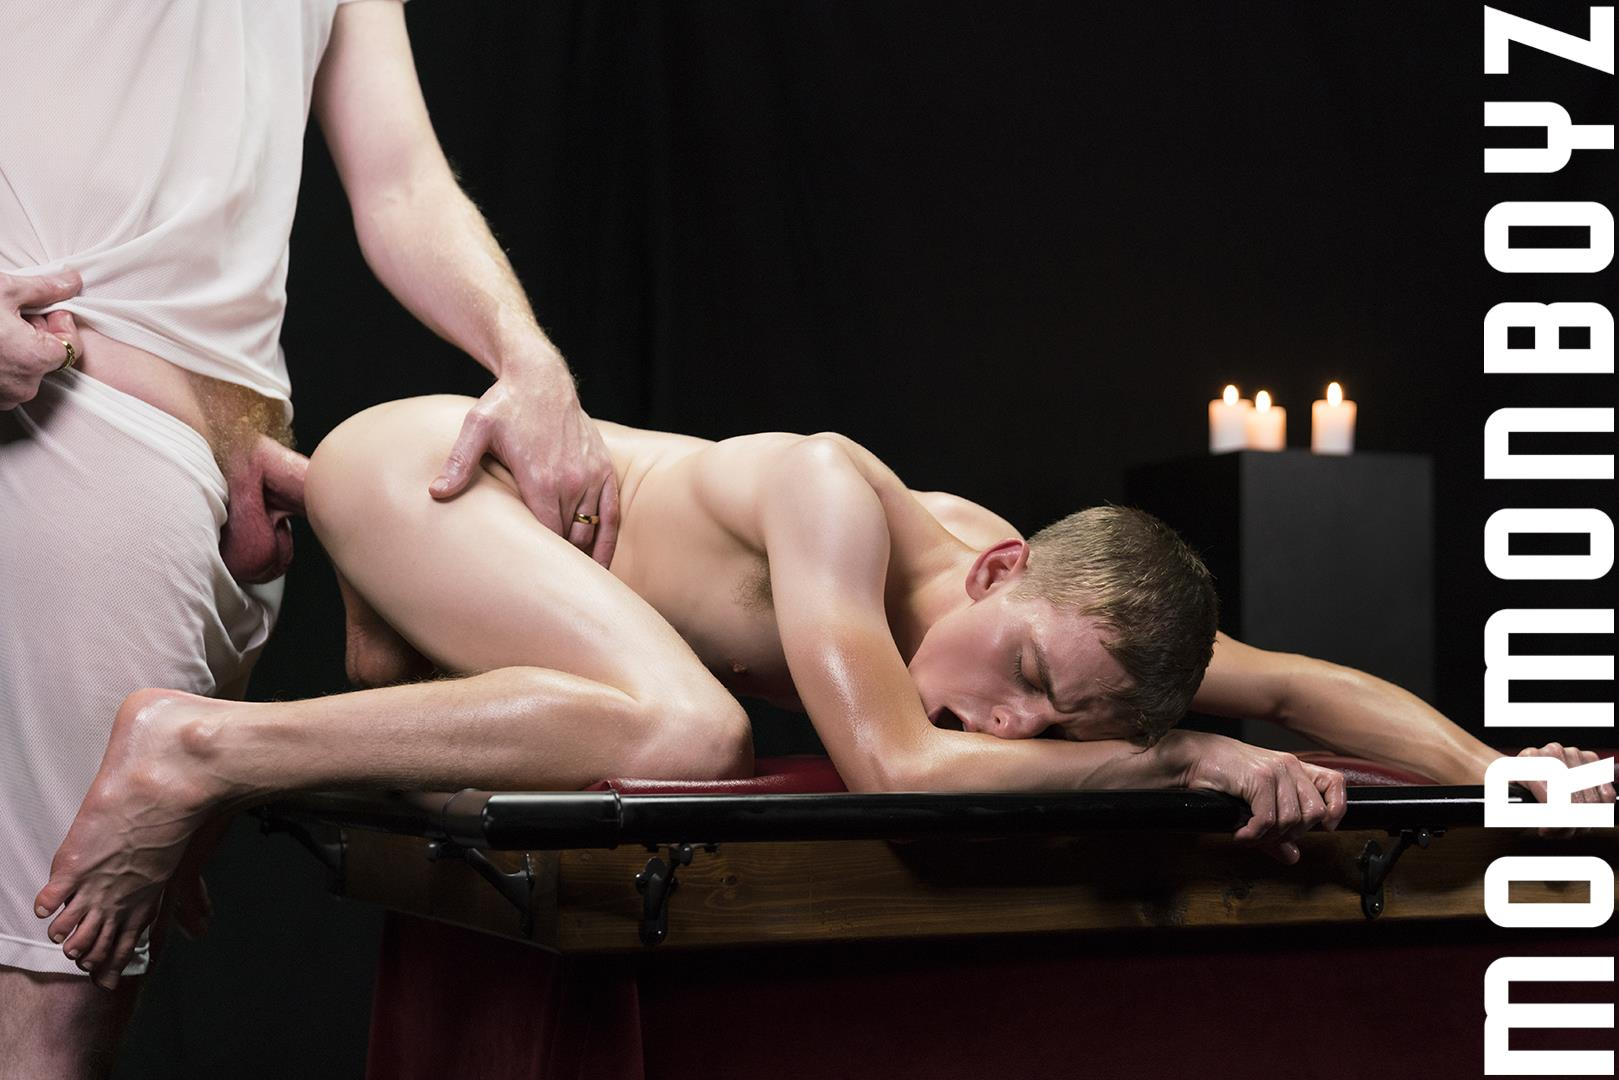 Mormon-Boyz-Older-Big-Dick-Daddy-Barebacking-Younger-Twink-Gay-Sex-Video-22 Mormon Missionary Twink Takes A Thick Daddy Cock Up The Ass Raw